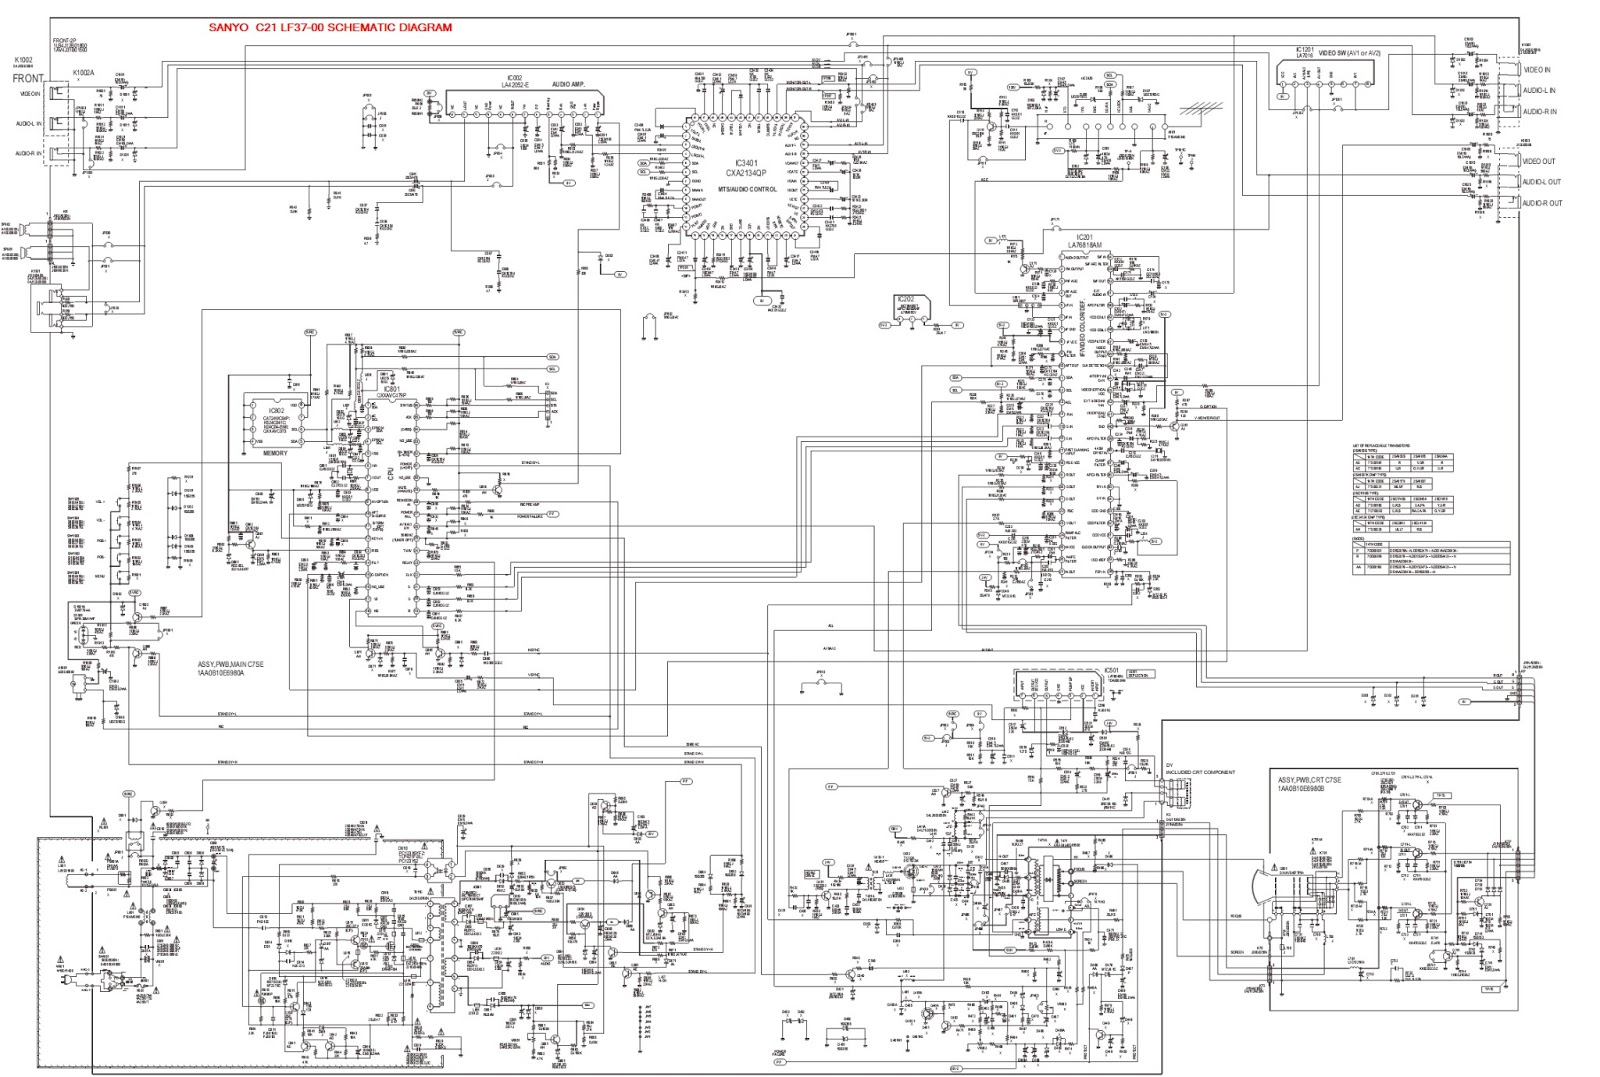 Sanyo 12vdc Relay Wiring Diagram Schematic Diagrams Channel Get Free Image About Direct Tv